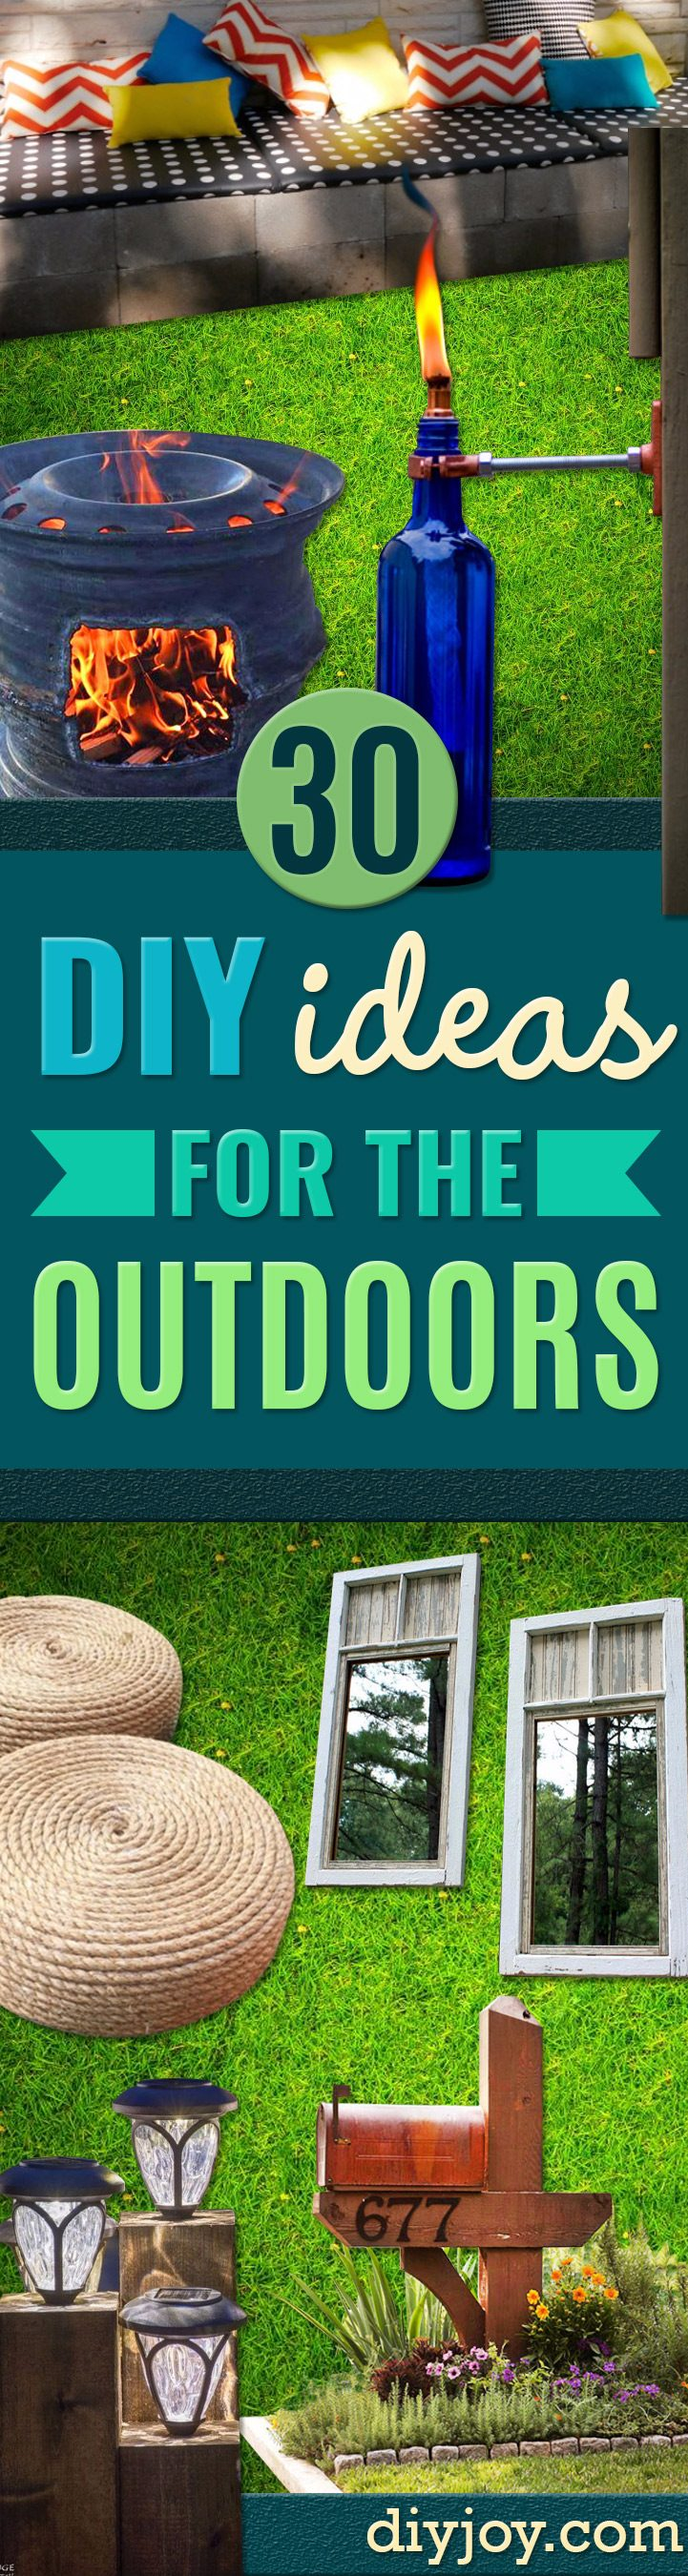 diy ideas outdoors DIY - Best Do It Yourself Ideas for Yard Projects, Camping, Patio and Spending Time in Garden and Outdoors - Step by Step Tutorials and Project Ideas for Backyard Fun, Cooking and Seating